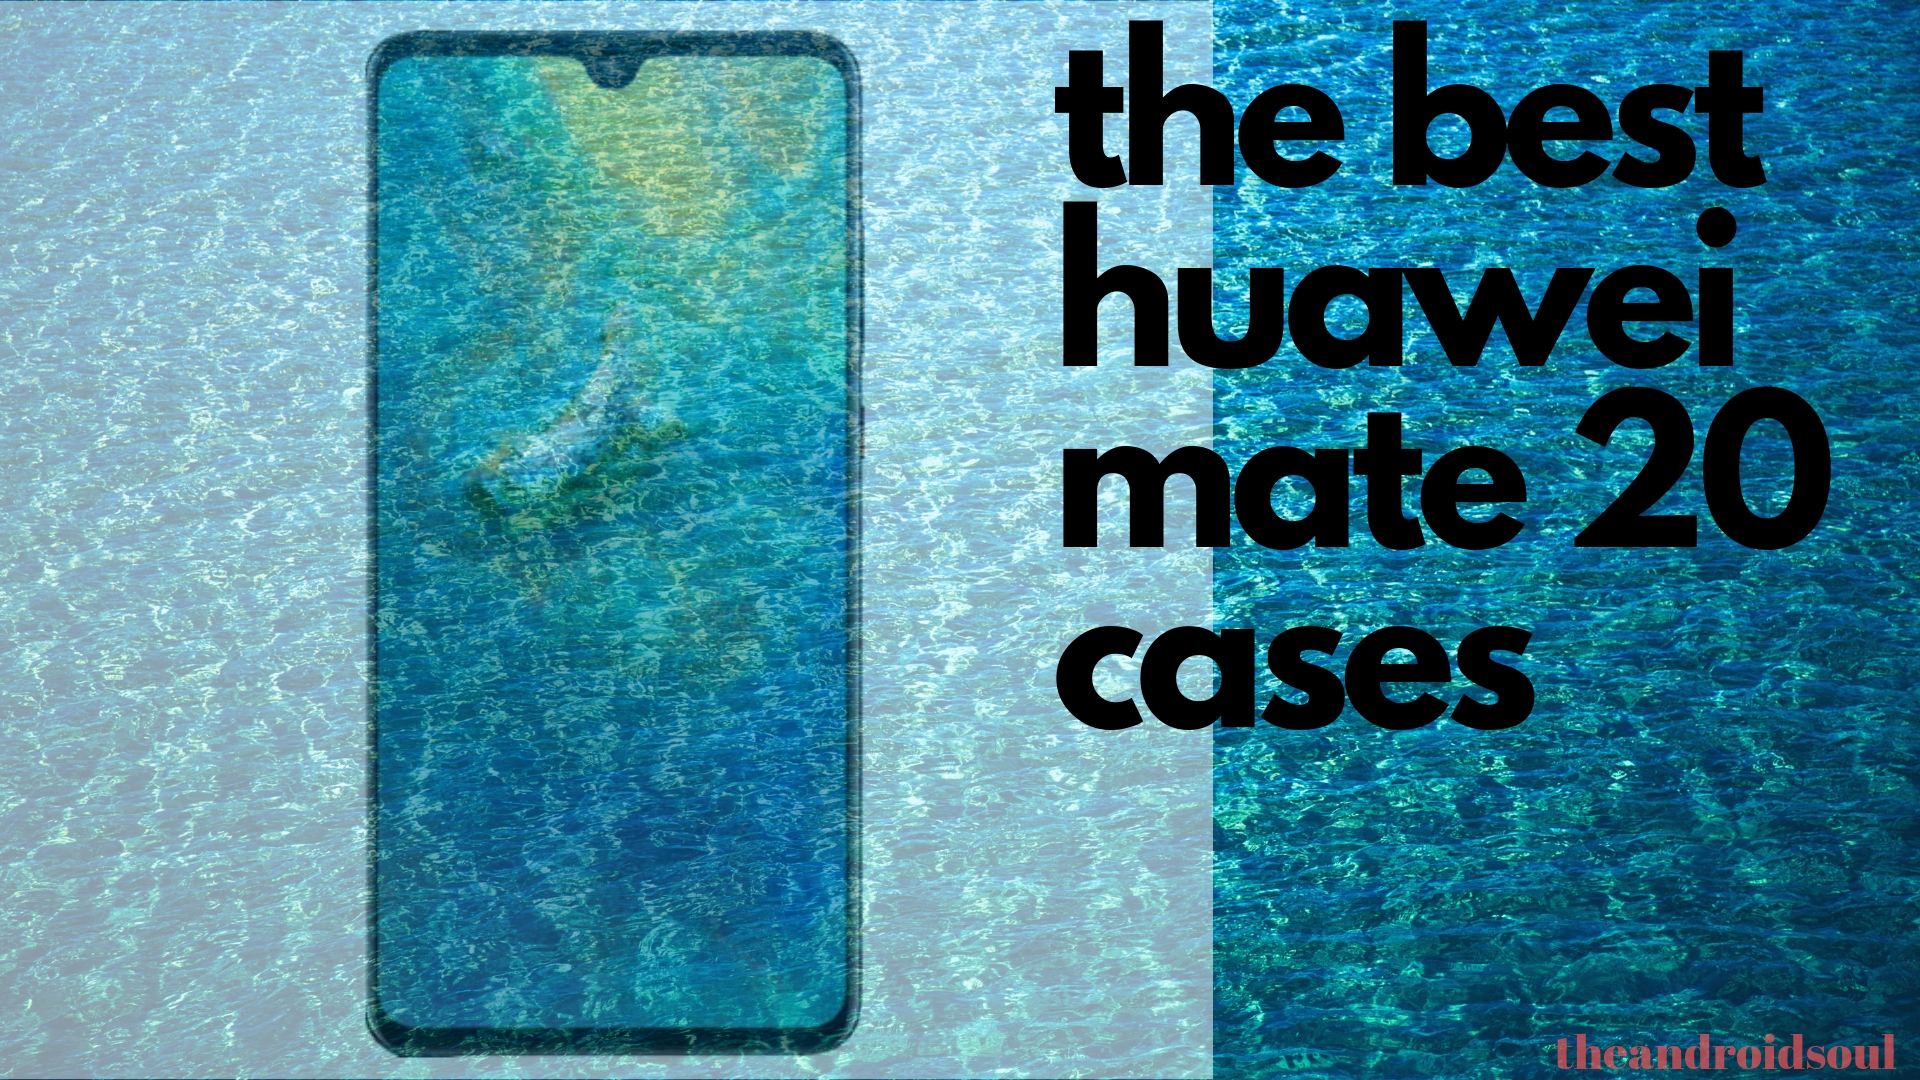 the best huawei mate 20 cases